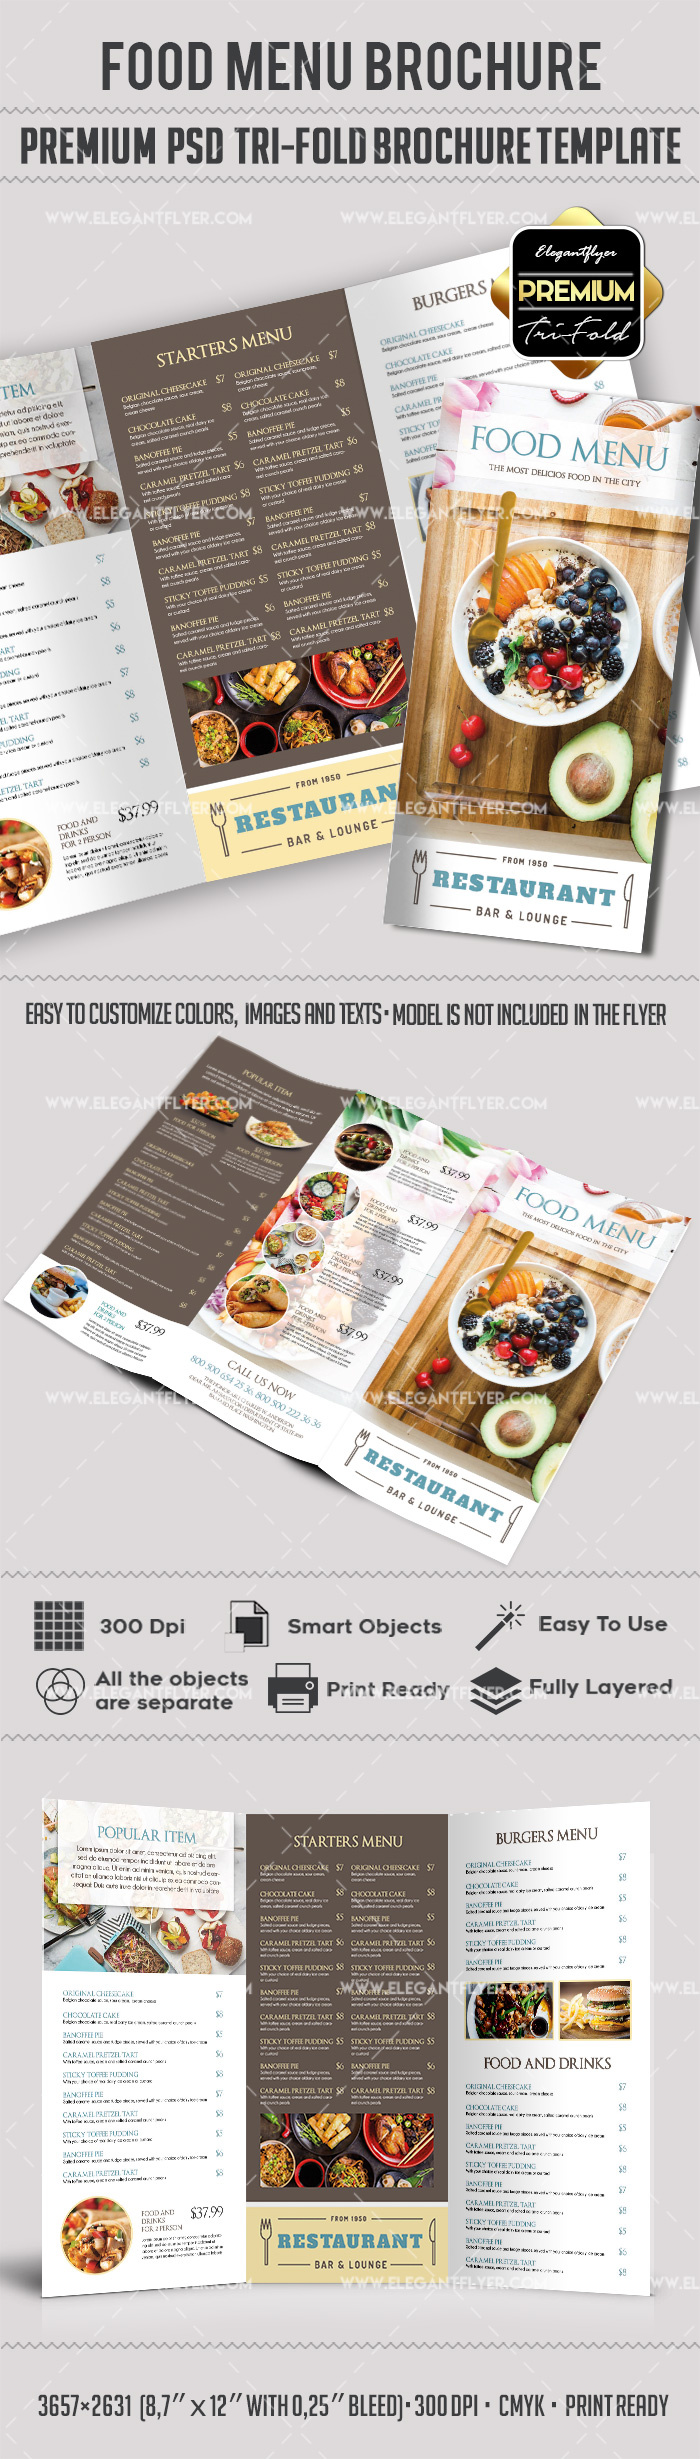 Food menu premium tri fold psd brochure template by for Free food brochure templates